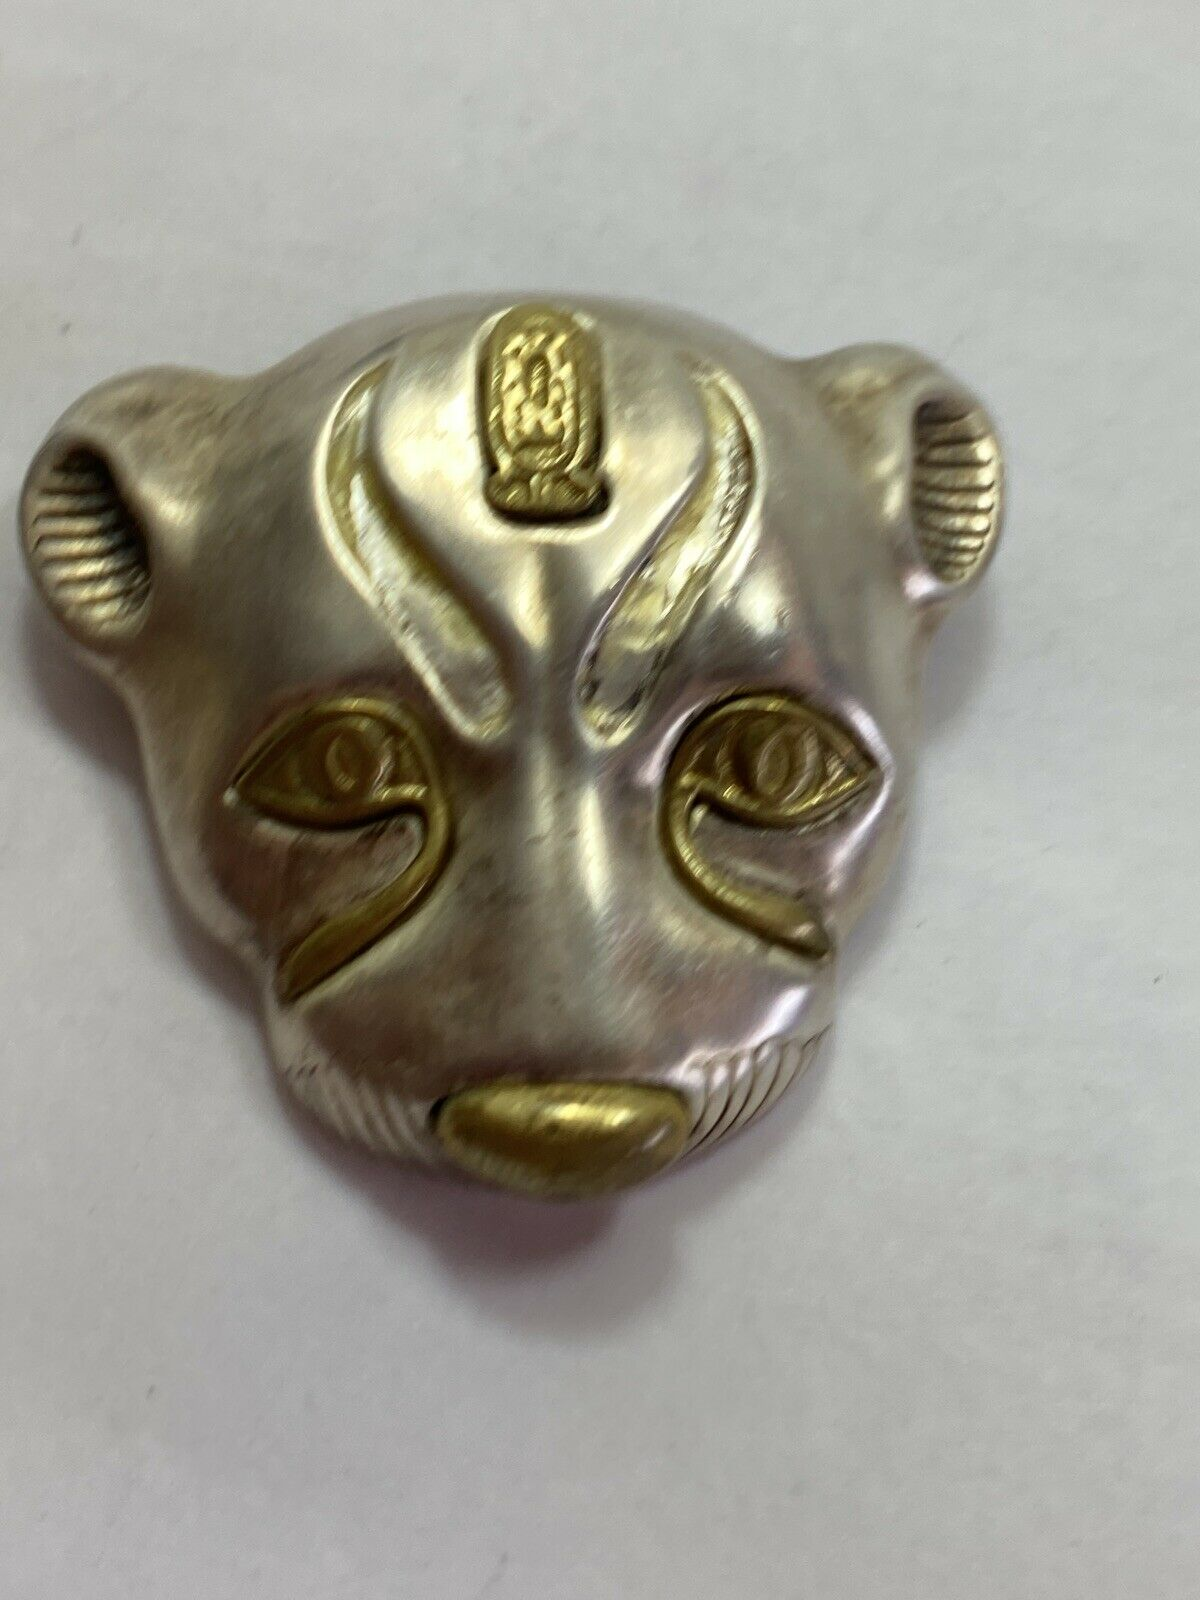 vintage Egyptian or Sumerian style sterling pendant